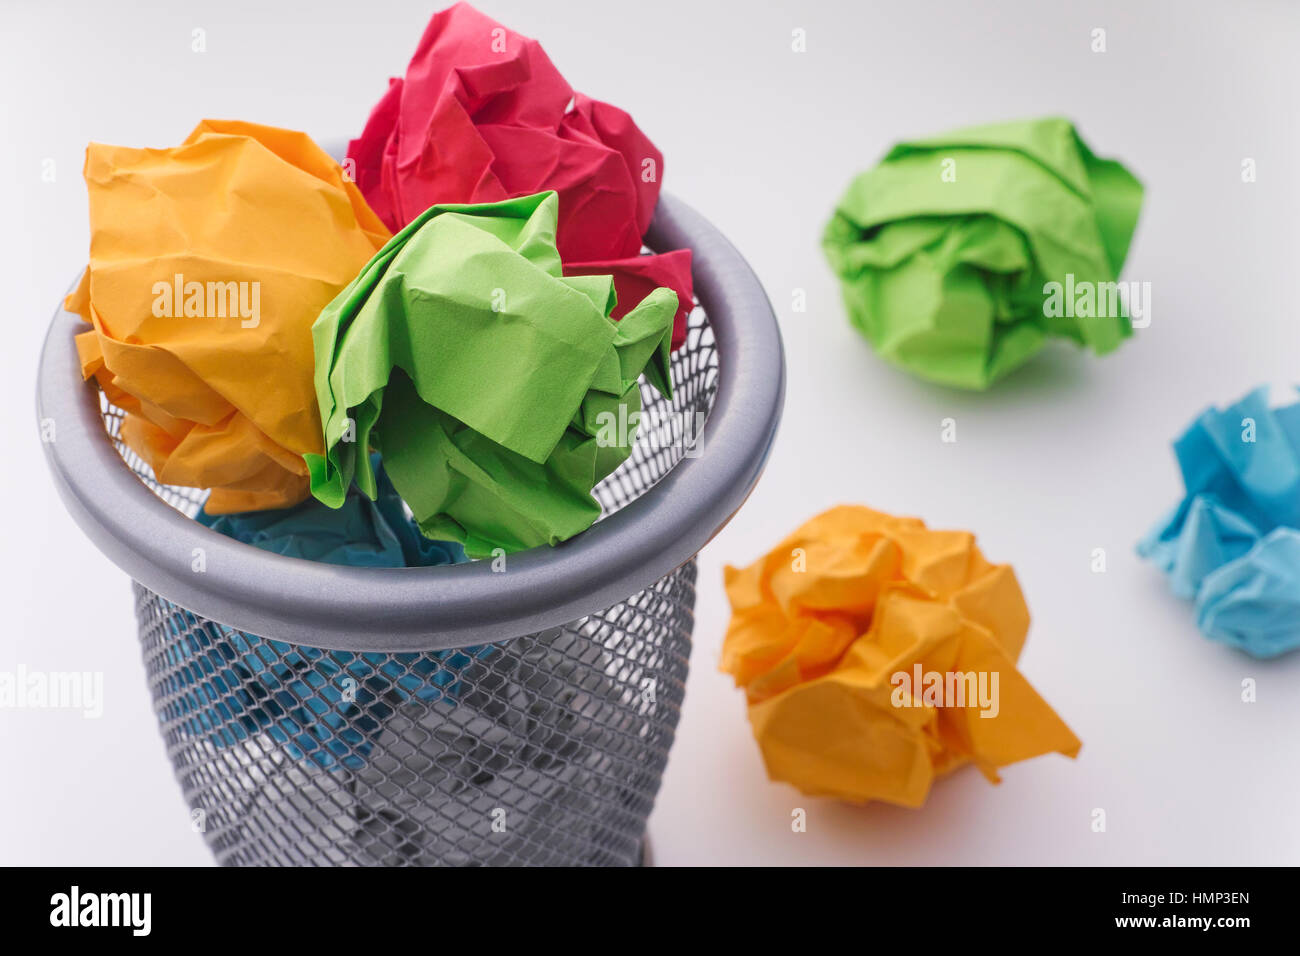 Colorful paper balls in a trash can. Idea Concept. - Stock Image